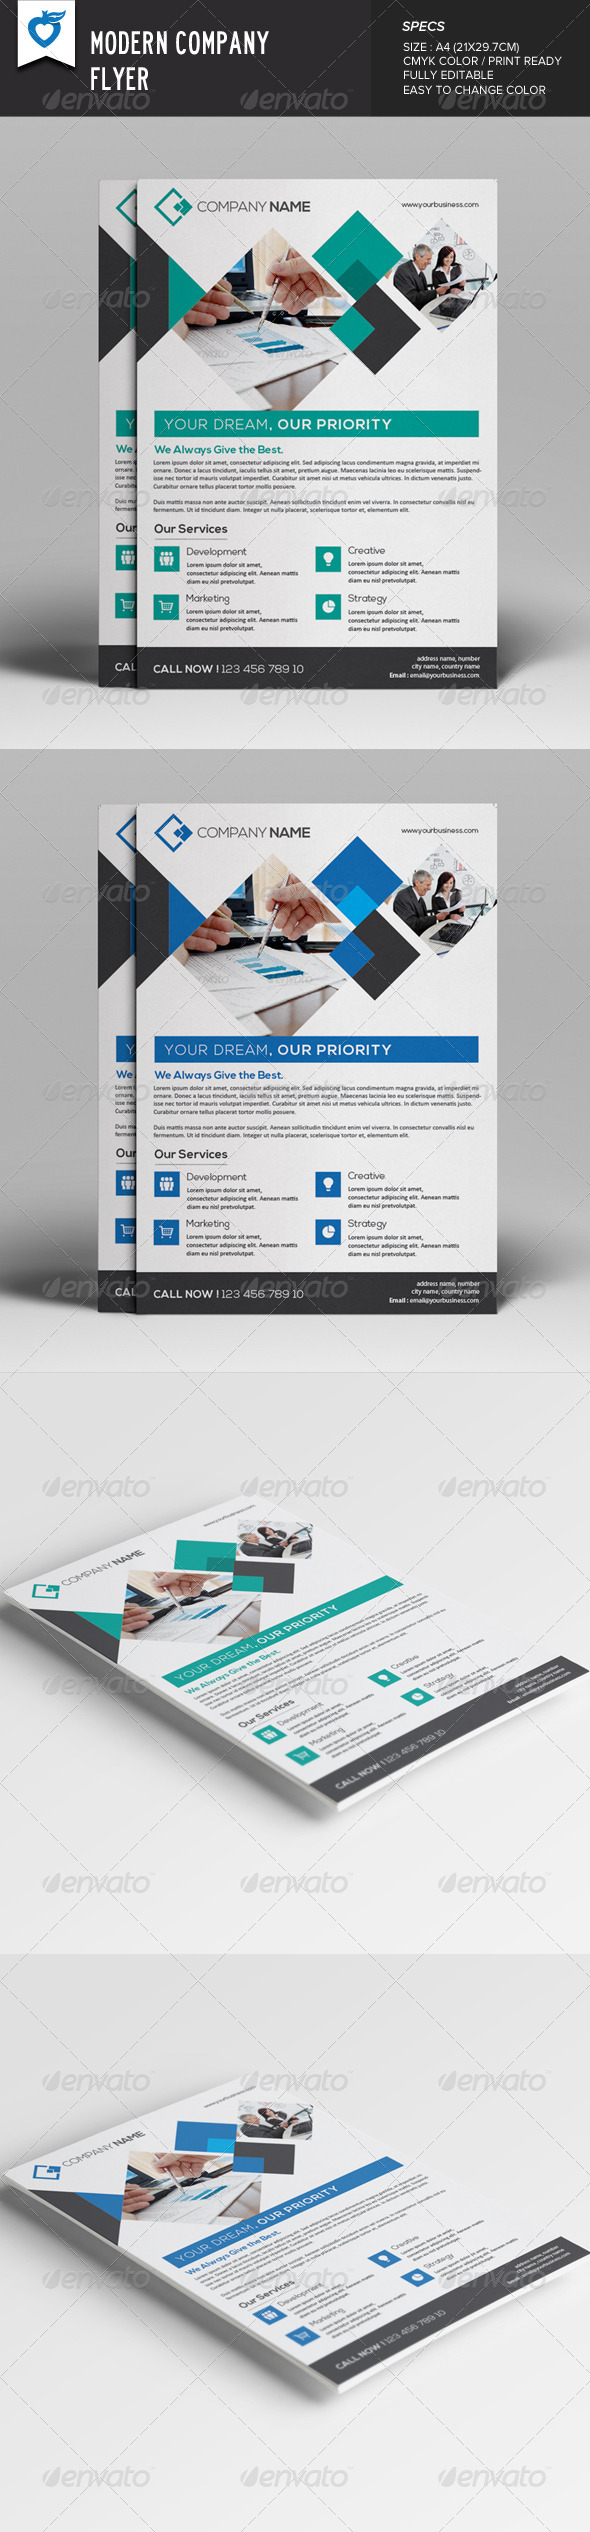 GraphicRiver Modern Company Flyer 8026340